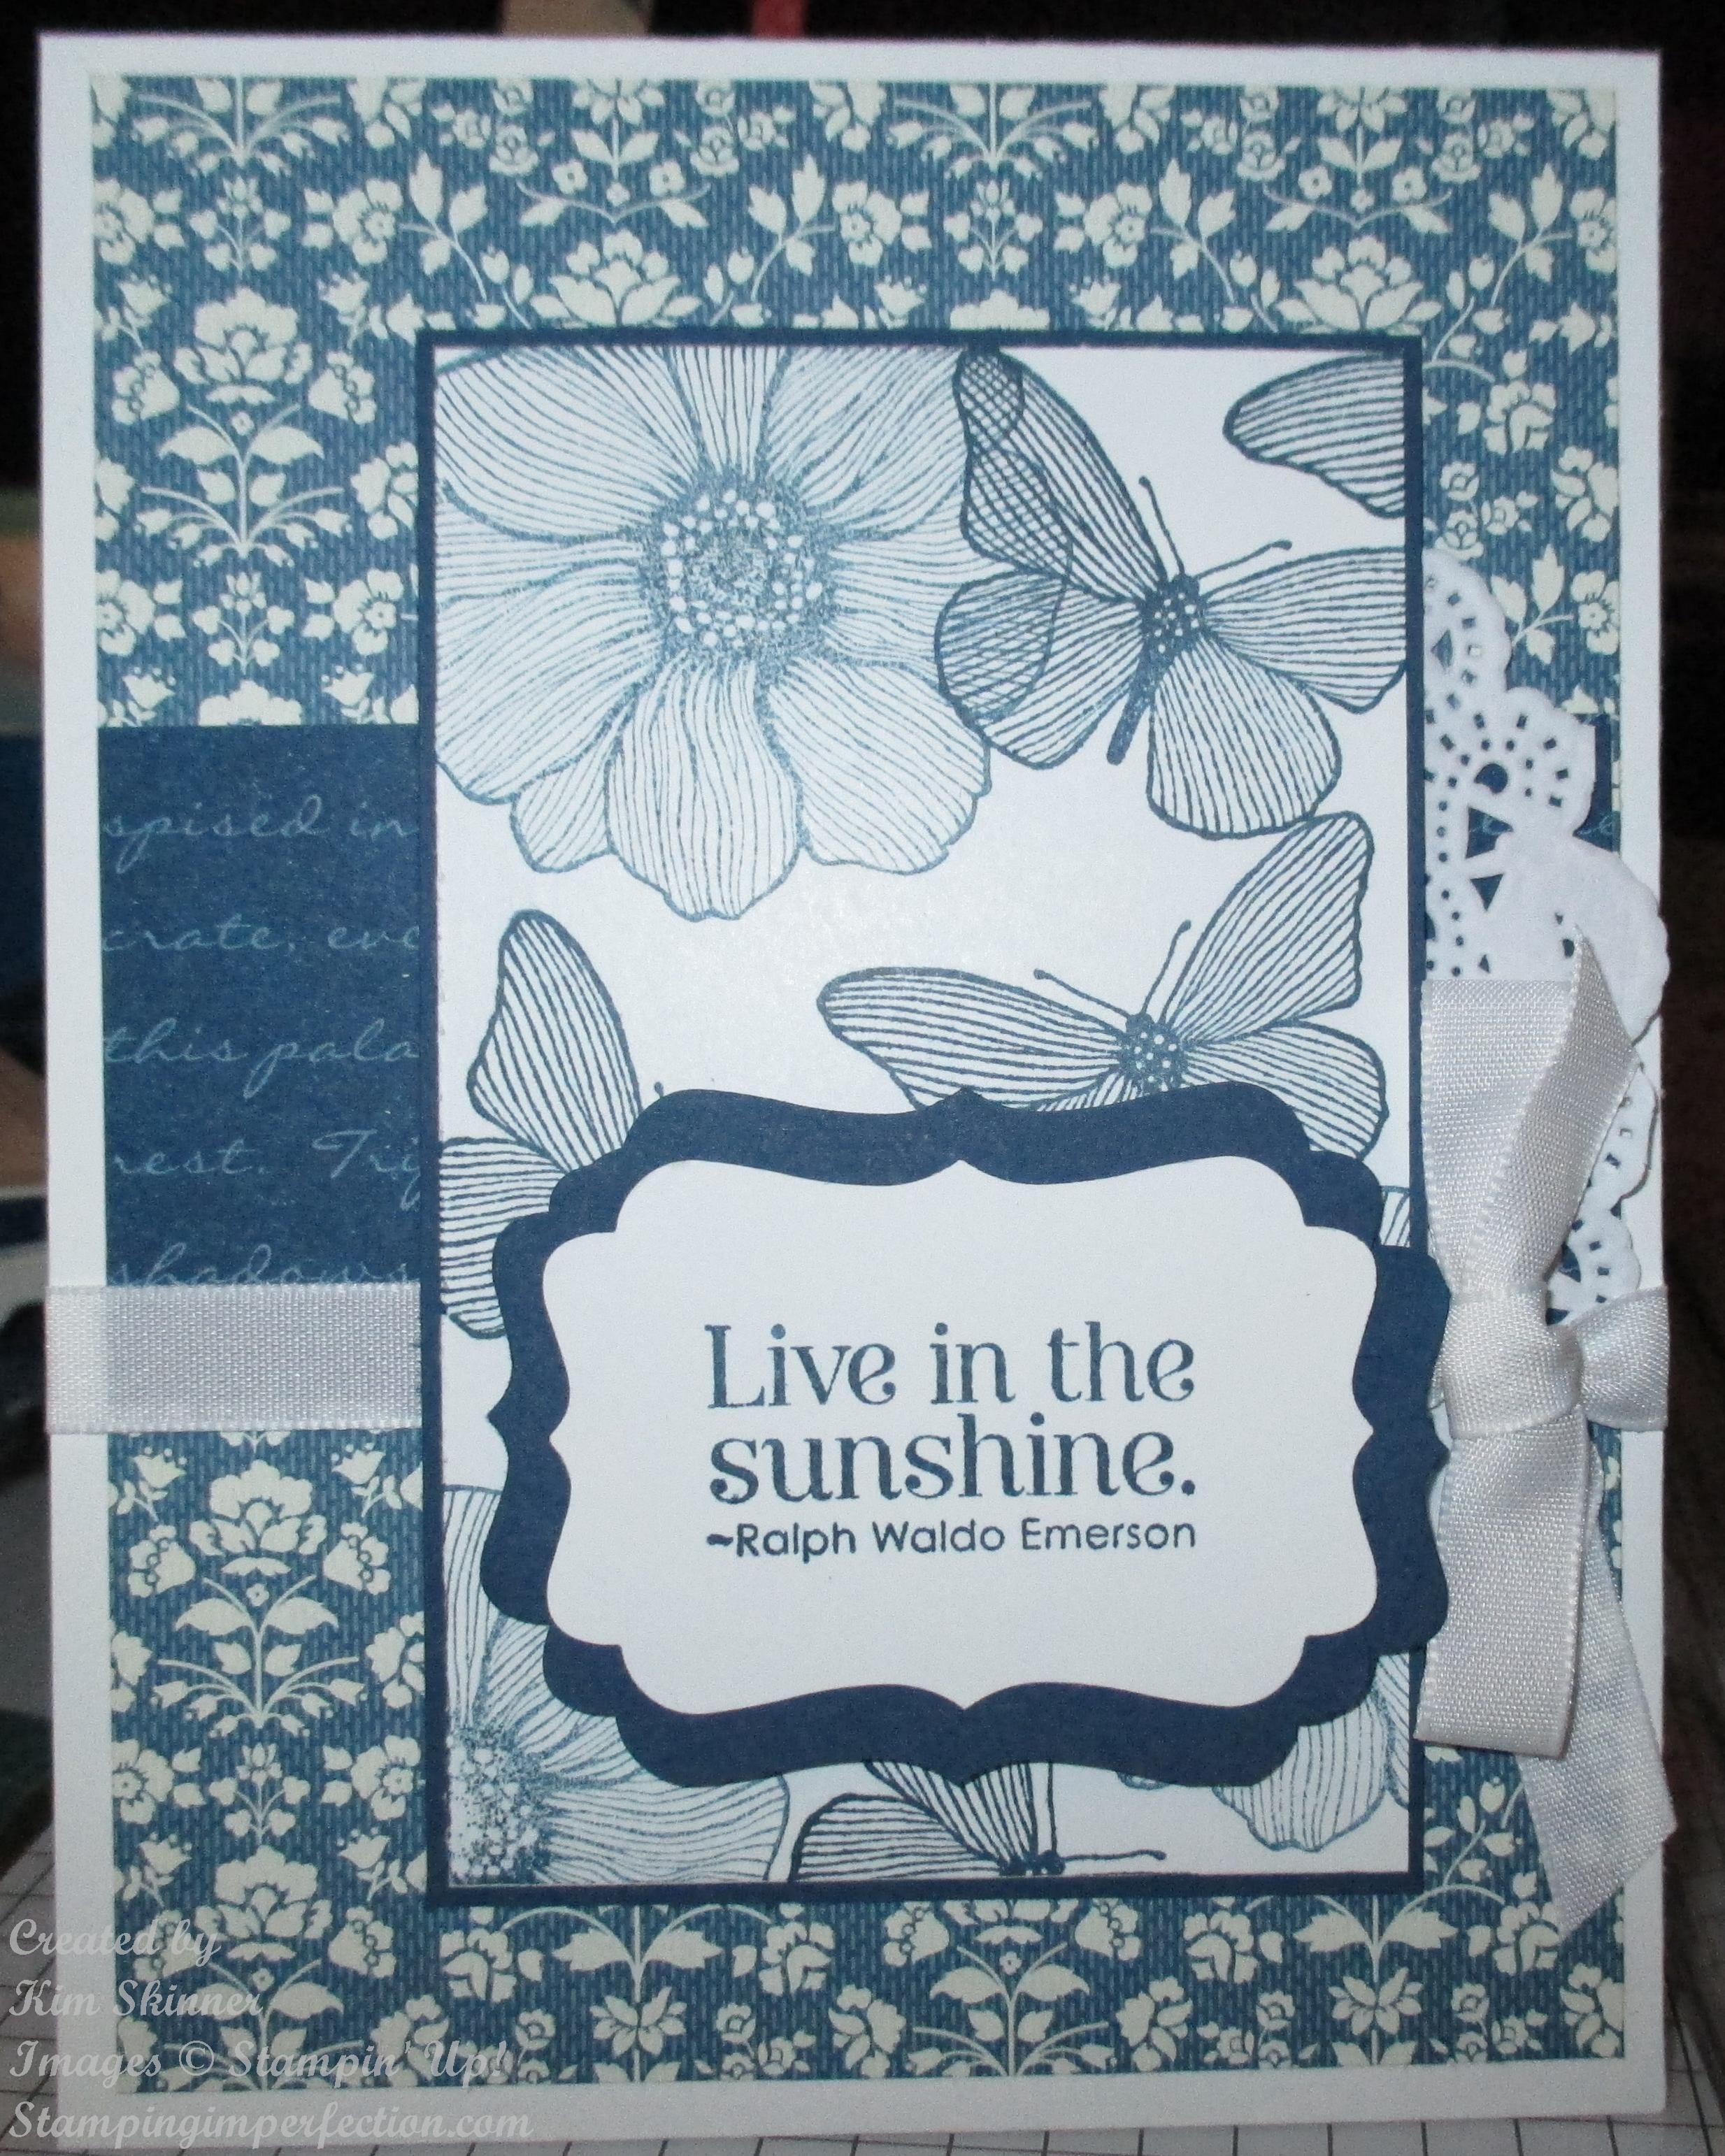 Pursuing Happiness With Summer Solstice From Stampin' Up!